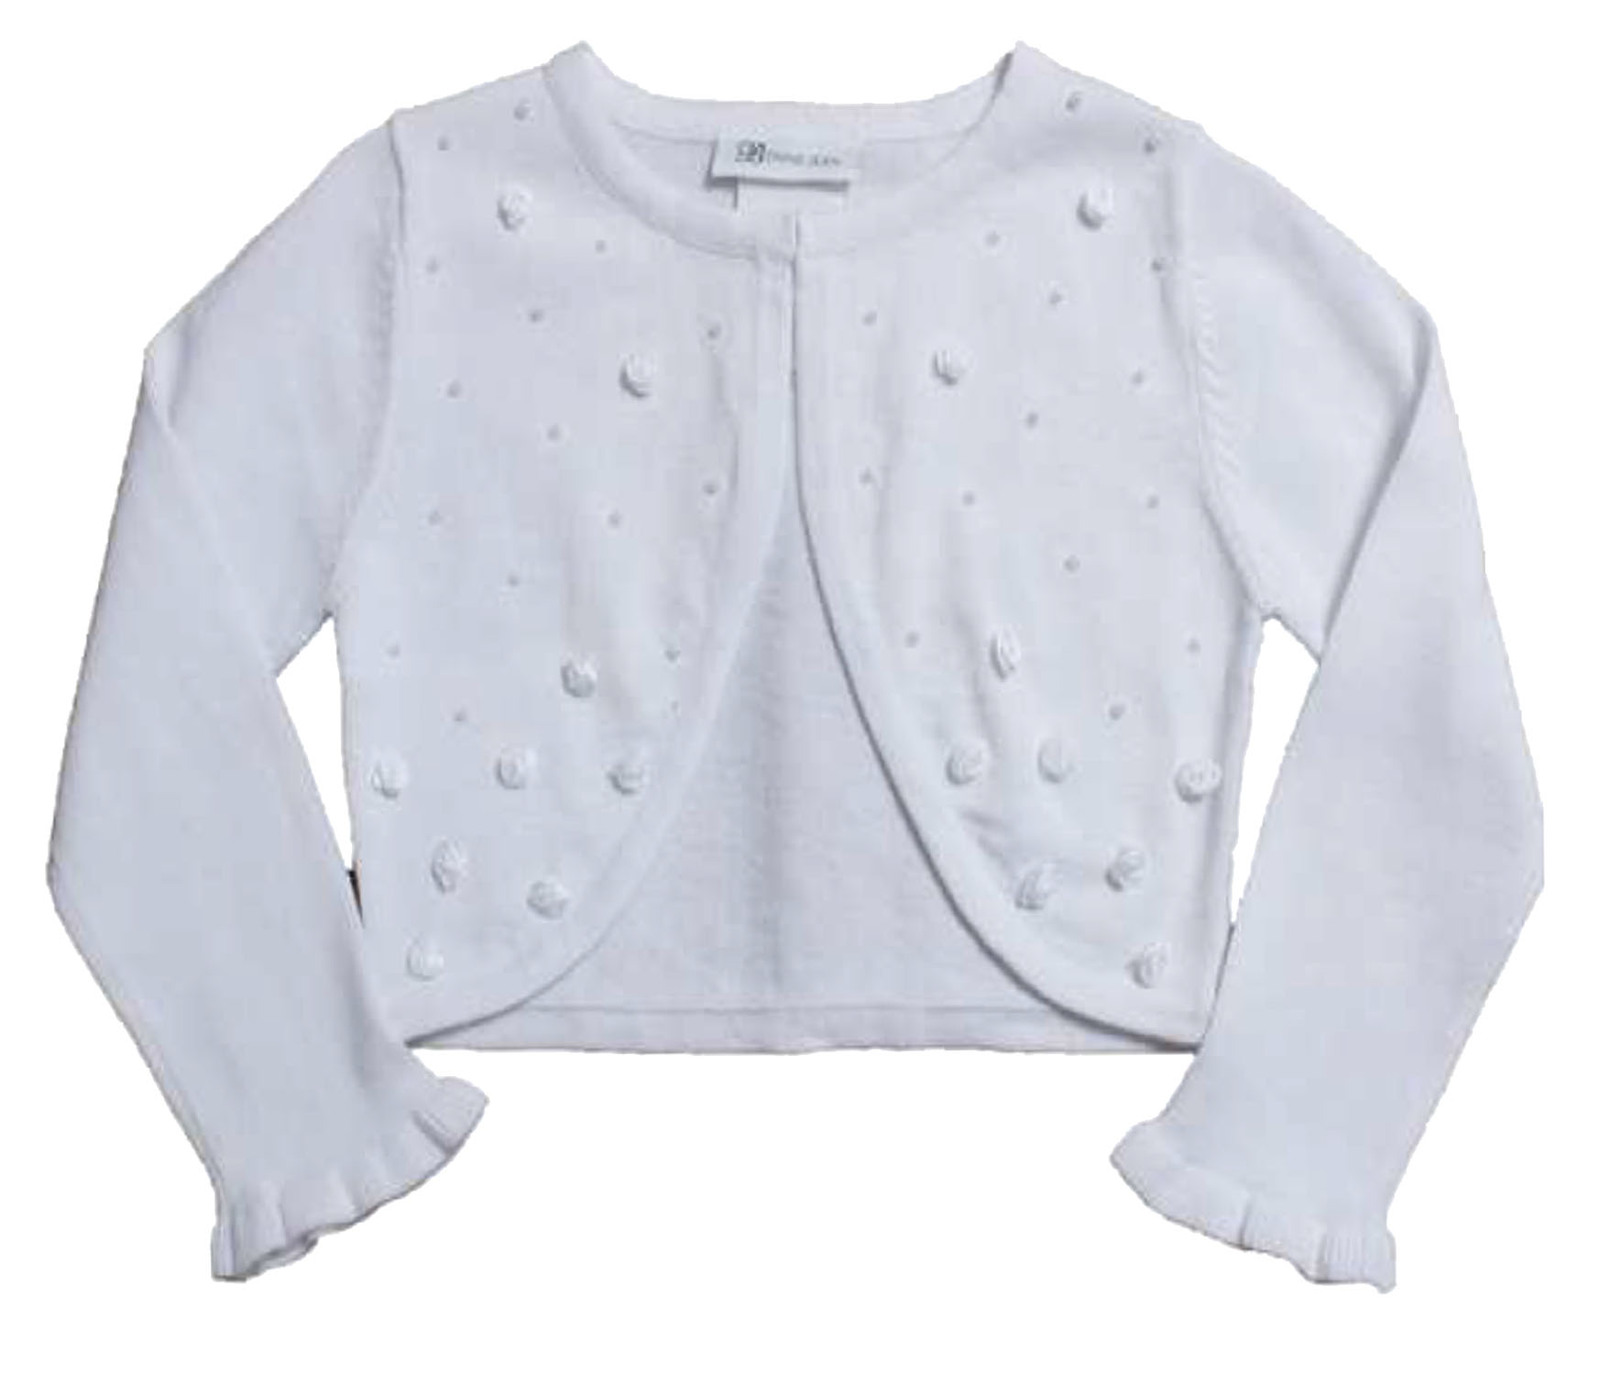 Bonnie Jean Big Girl Tween 7-16 White Pearl Rosette Knit Cardigan Sweater